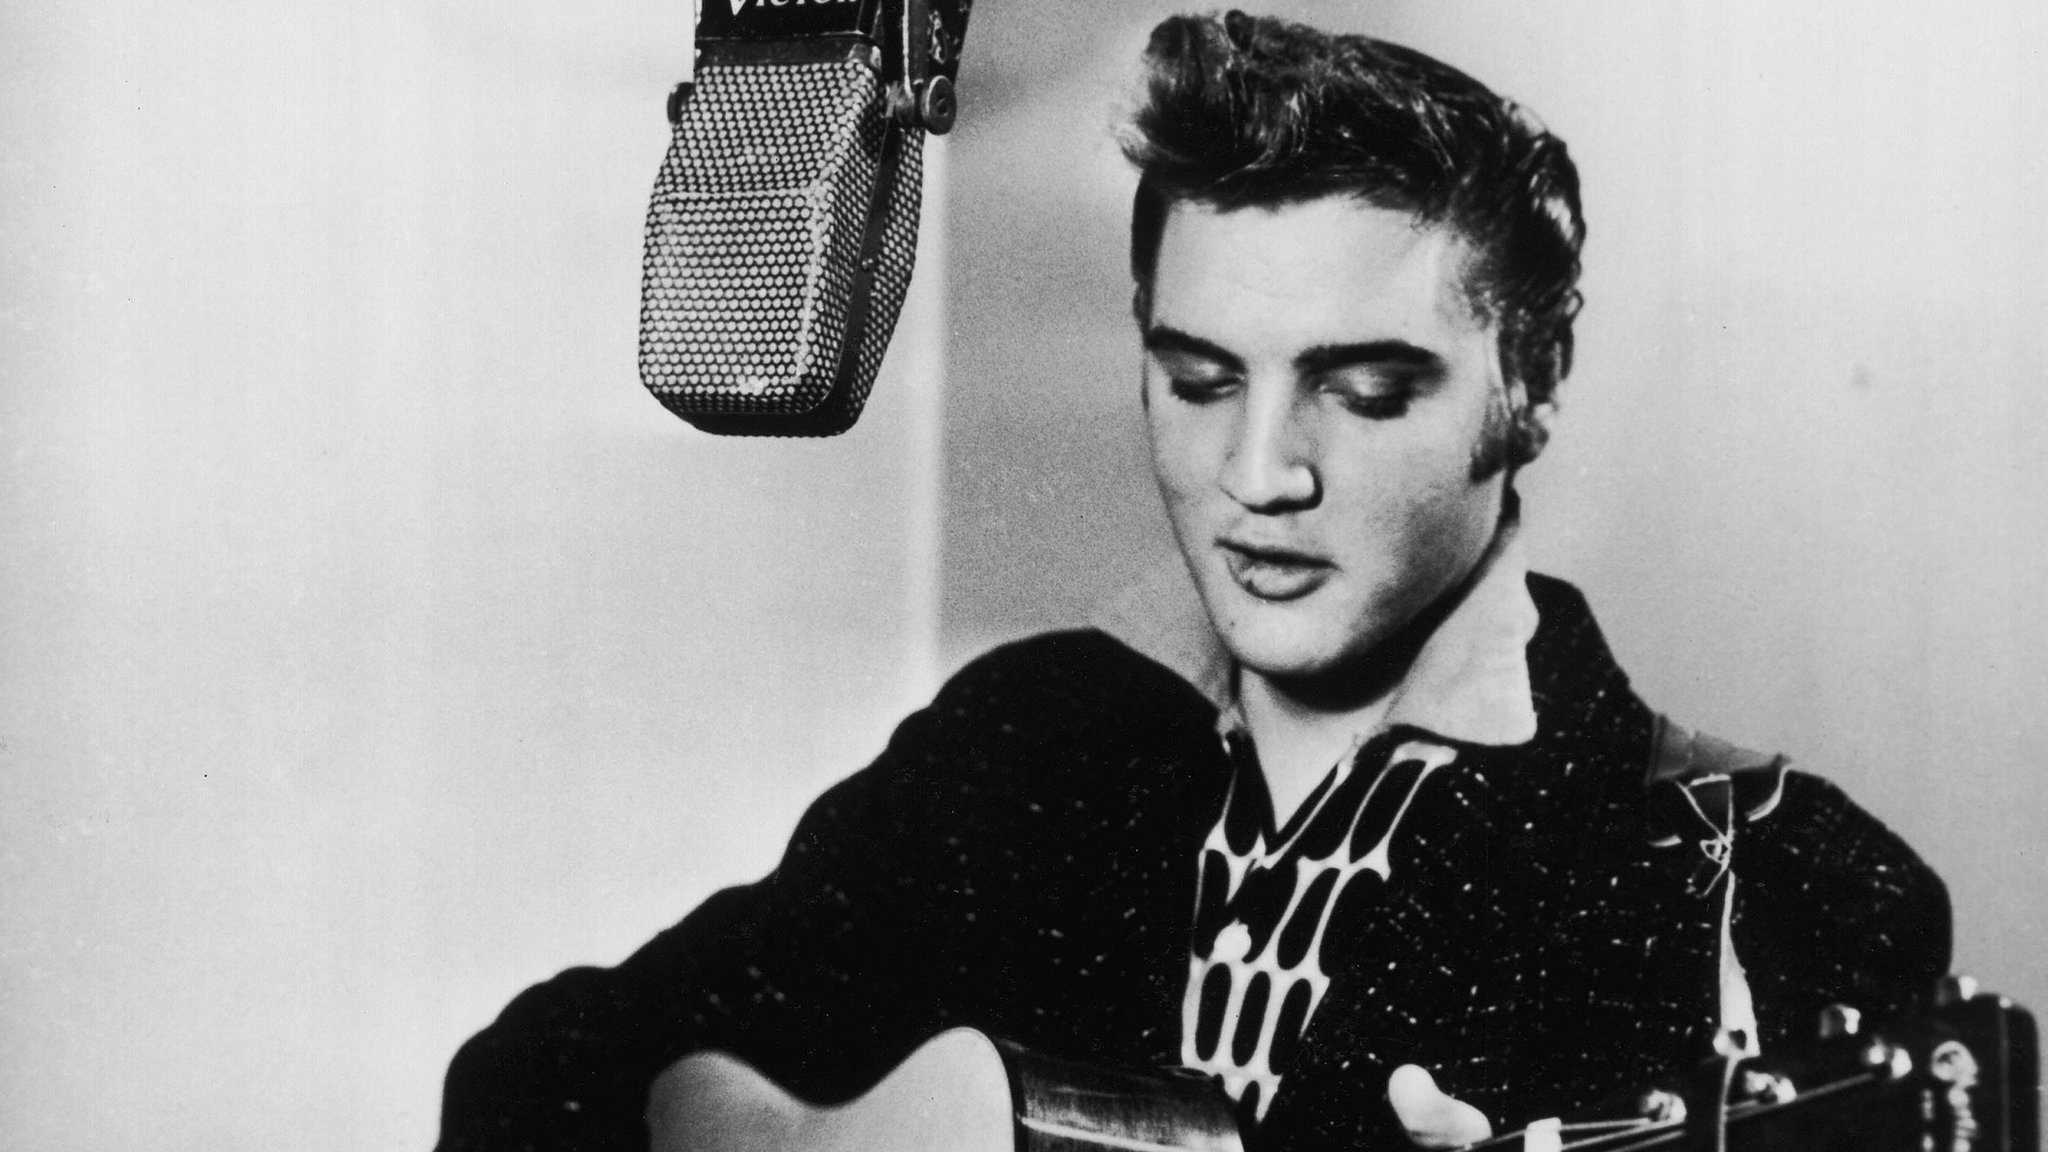 Elvis Presley gets US Presidential Medal of Freedom